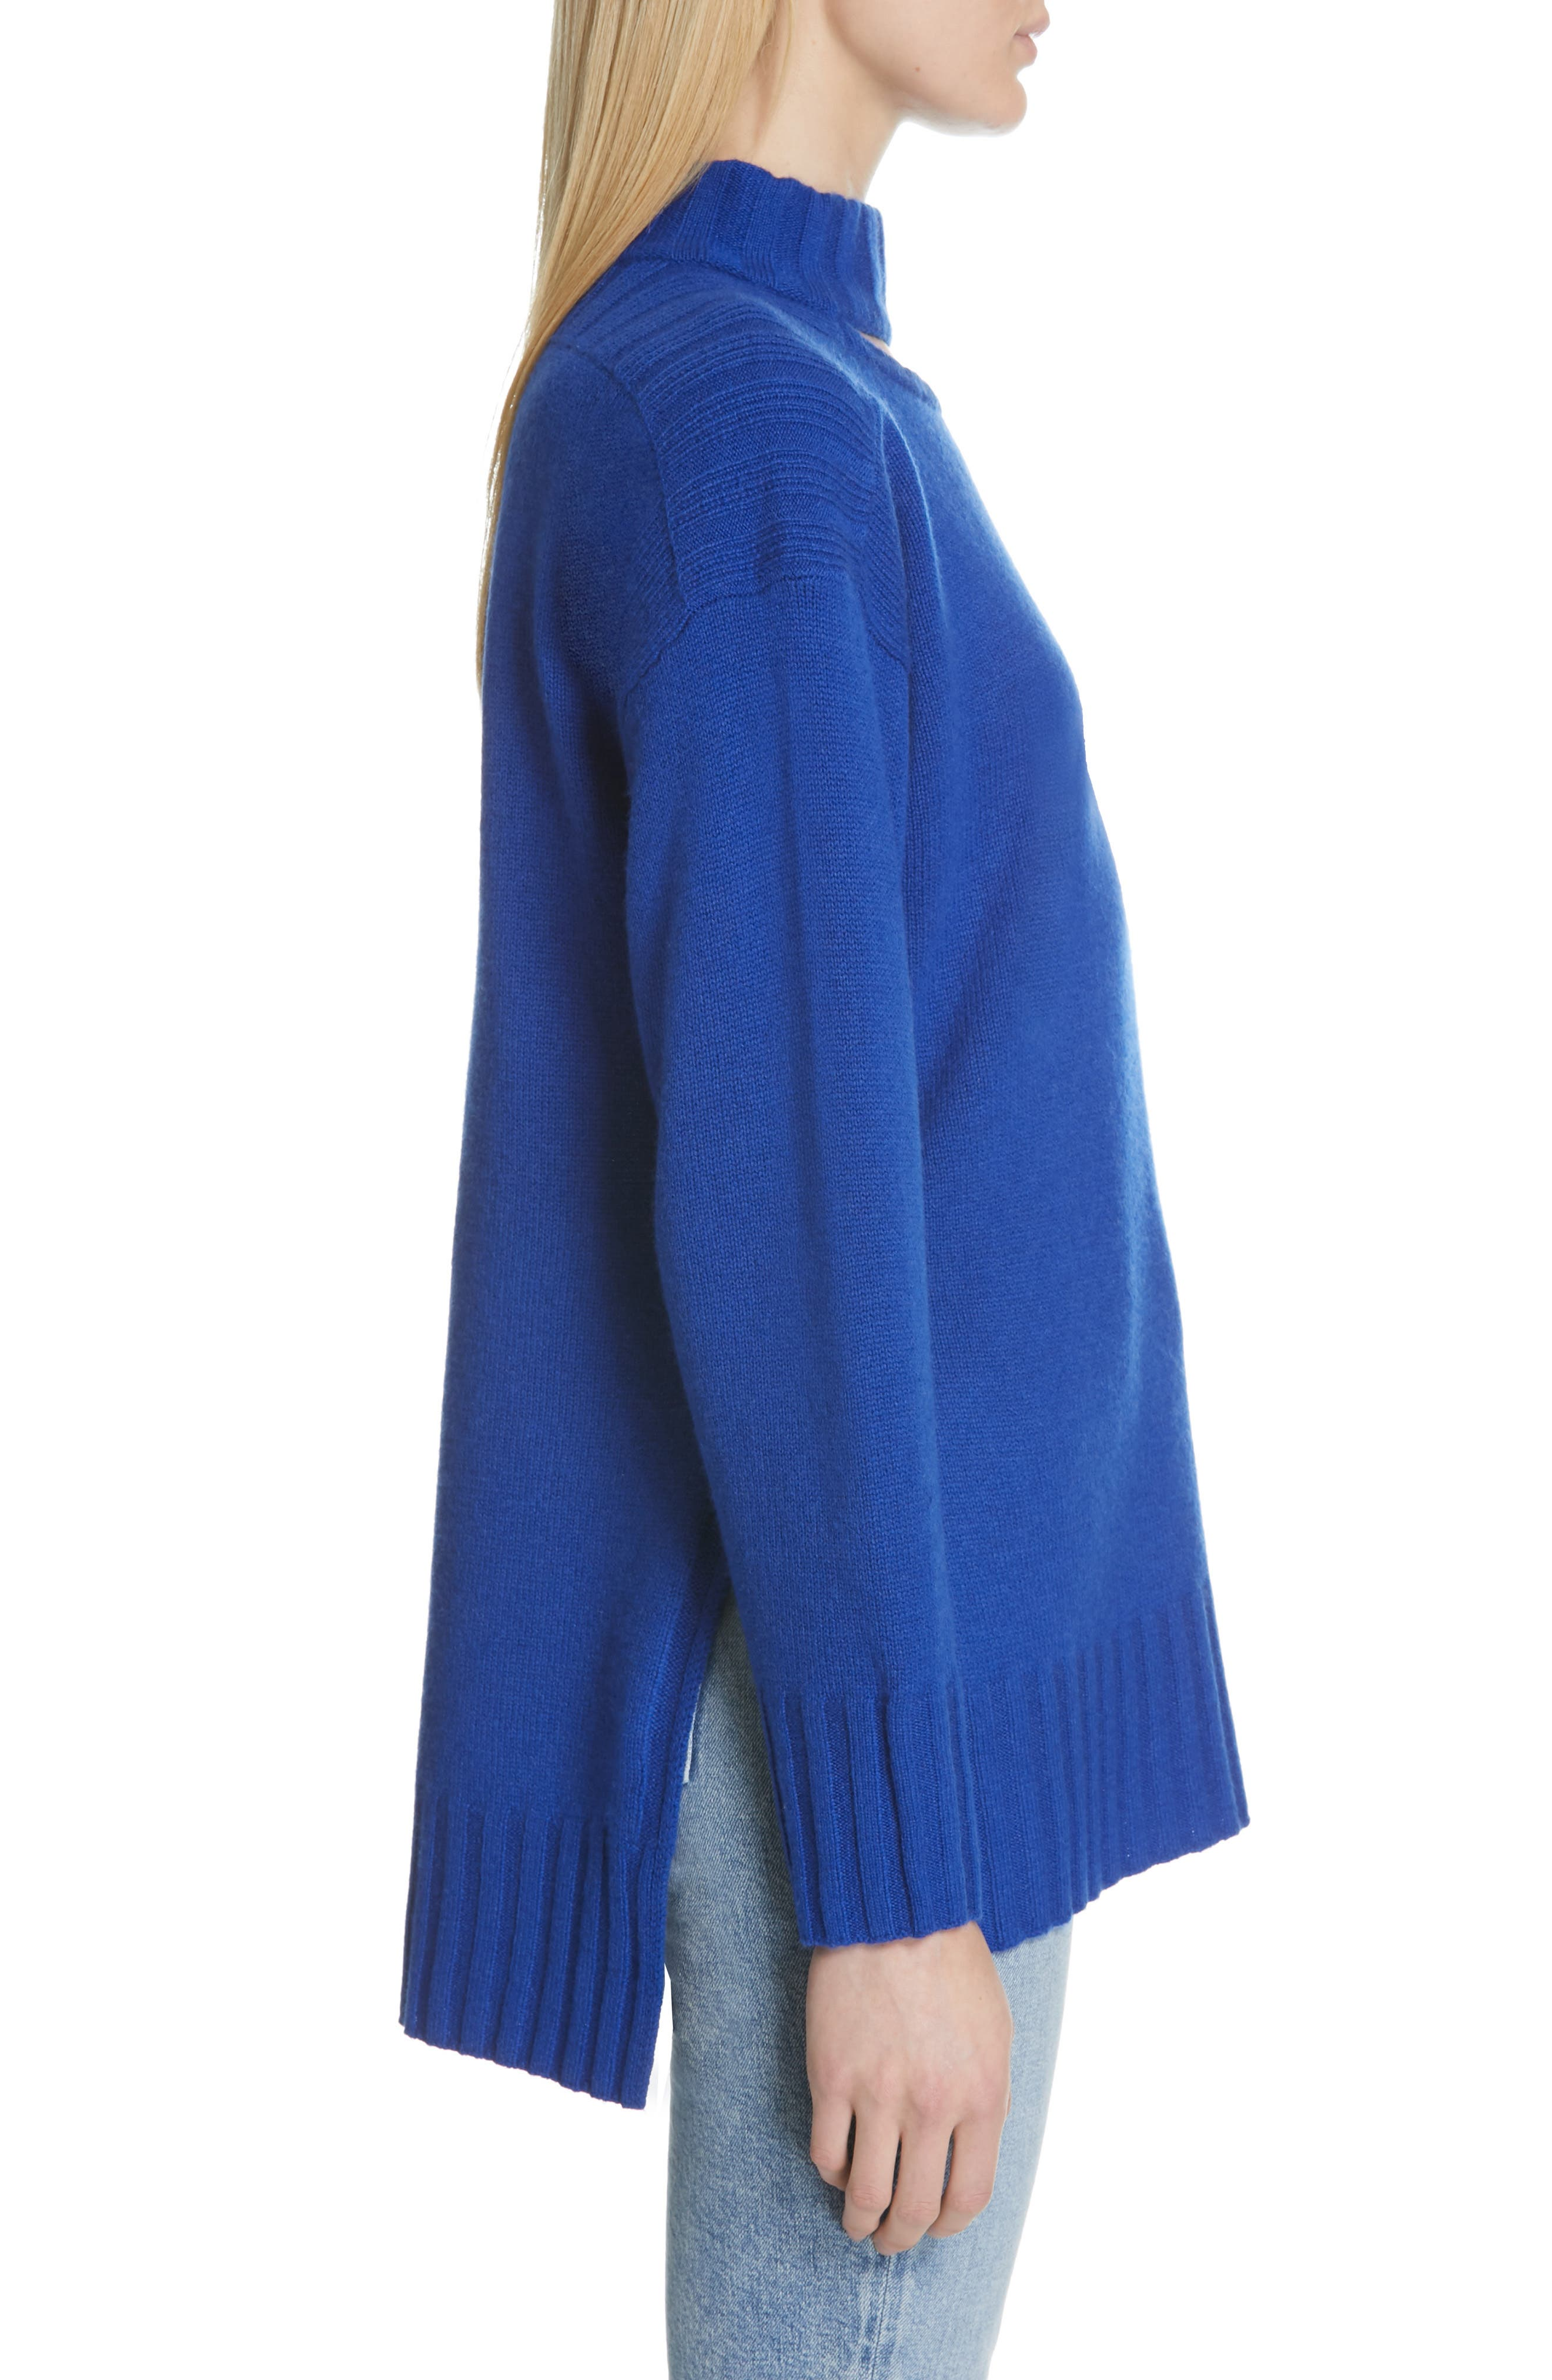 Stratford Wool & Cashmere Sweater,                             Alternate thumbnail 3, color,                             HYPER BLUE